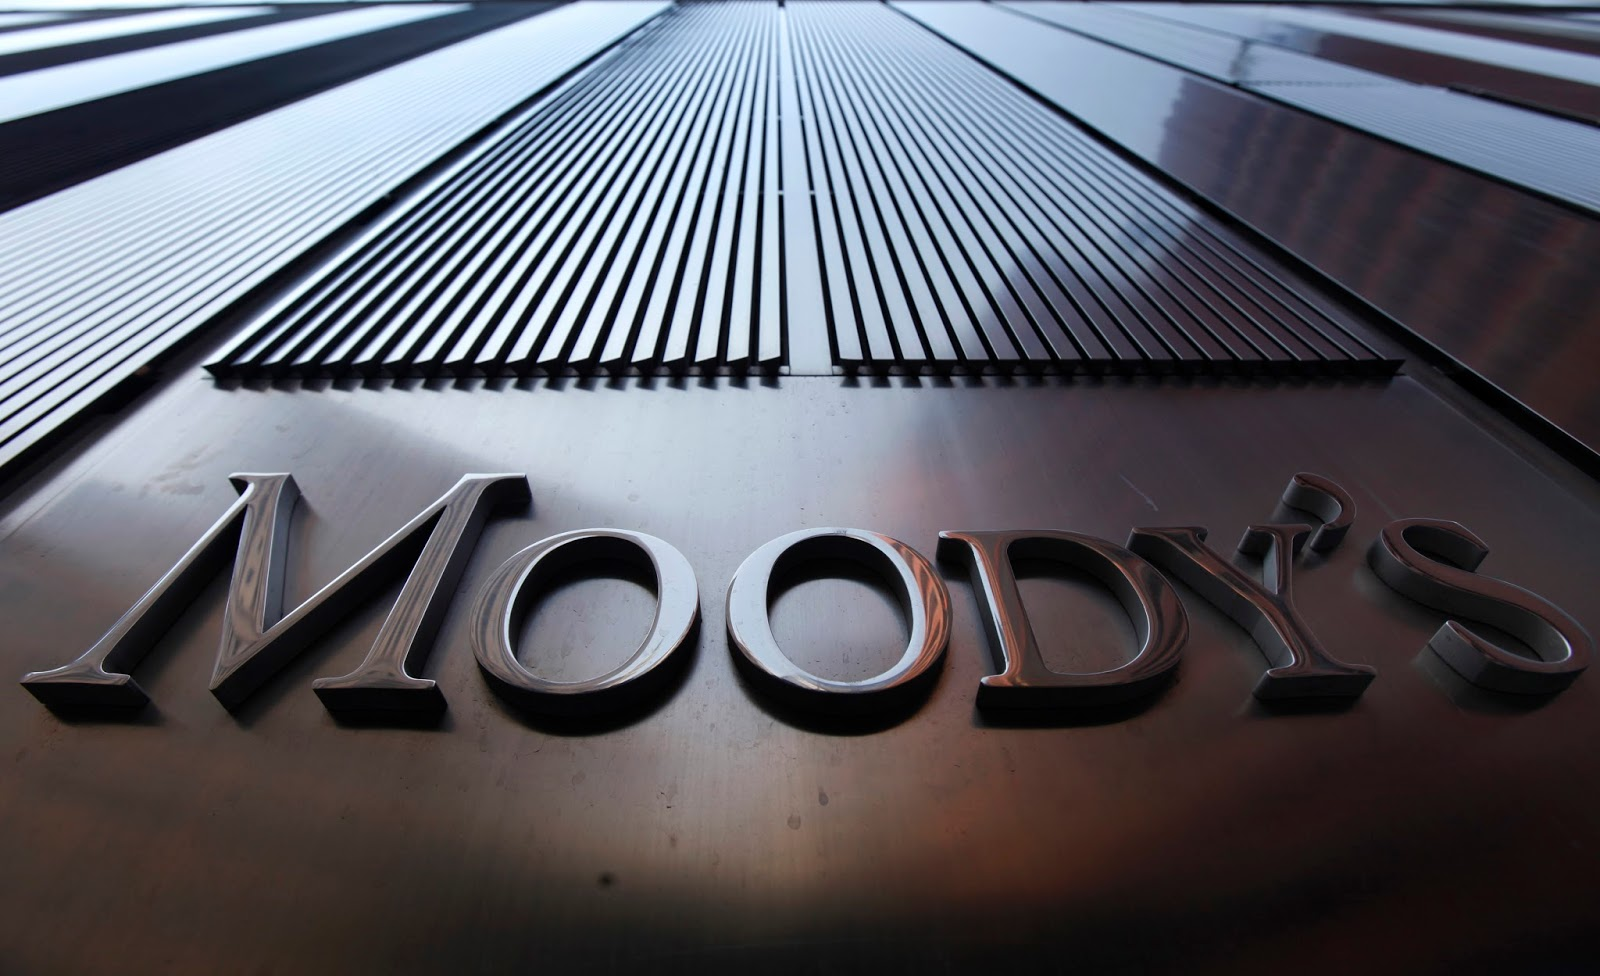 Ides illinois file my certification - The Downgrades Imposed By Moody S And Standard Poor S Move Illinois To The Brink Of Junk Bond Status The Rating Status Which In Moody S Terminology